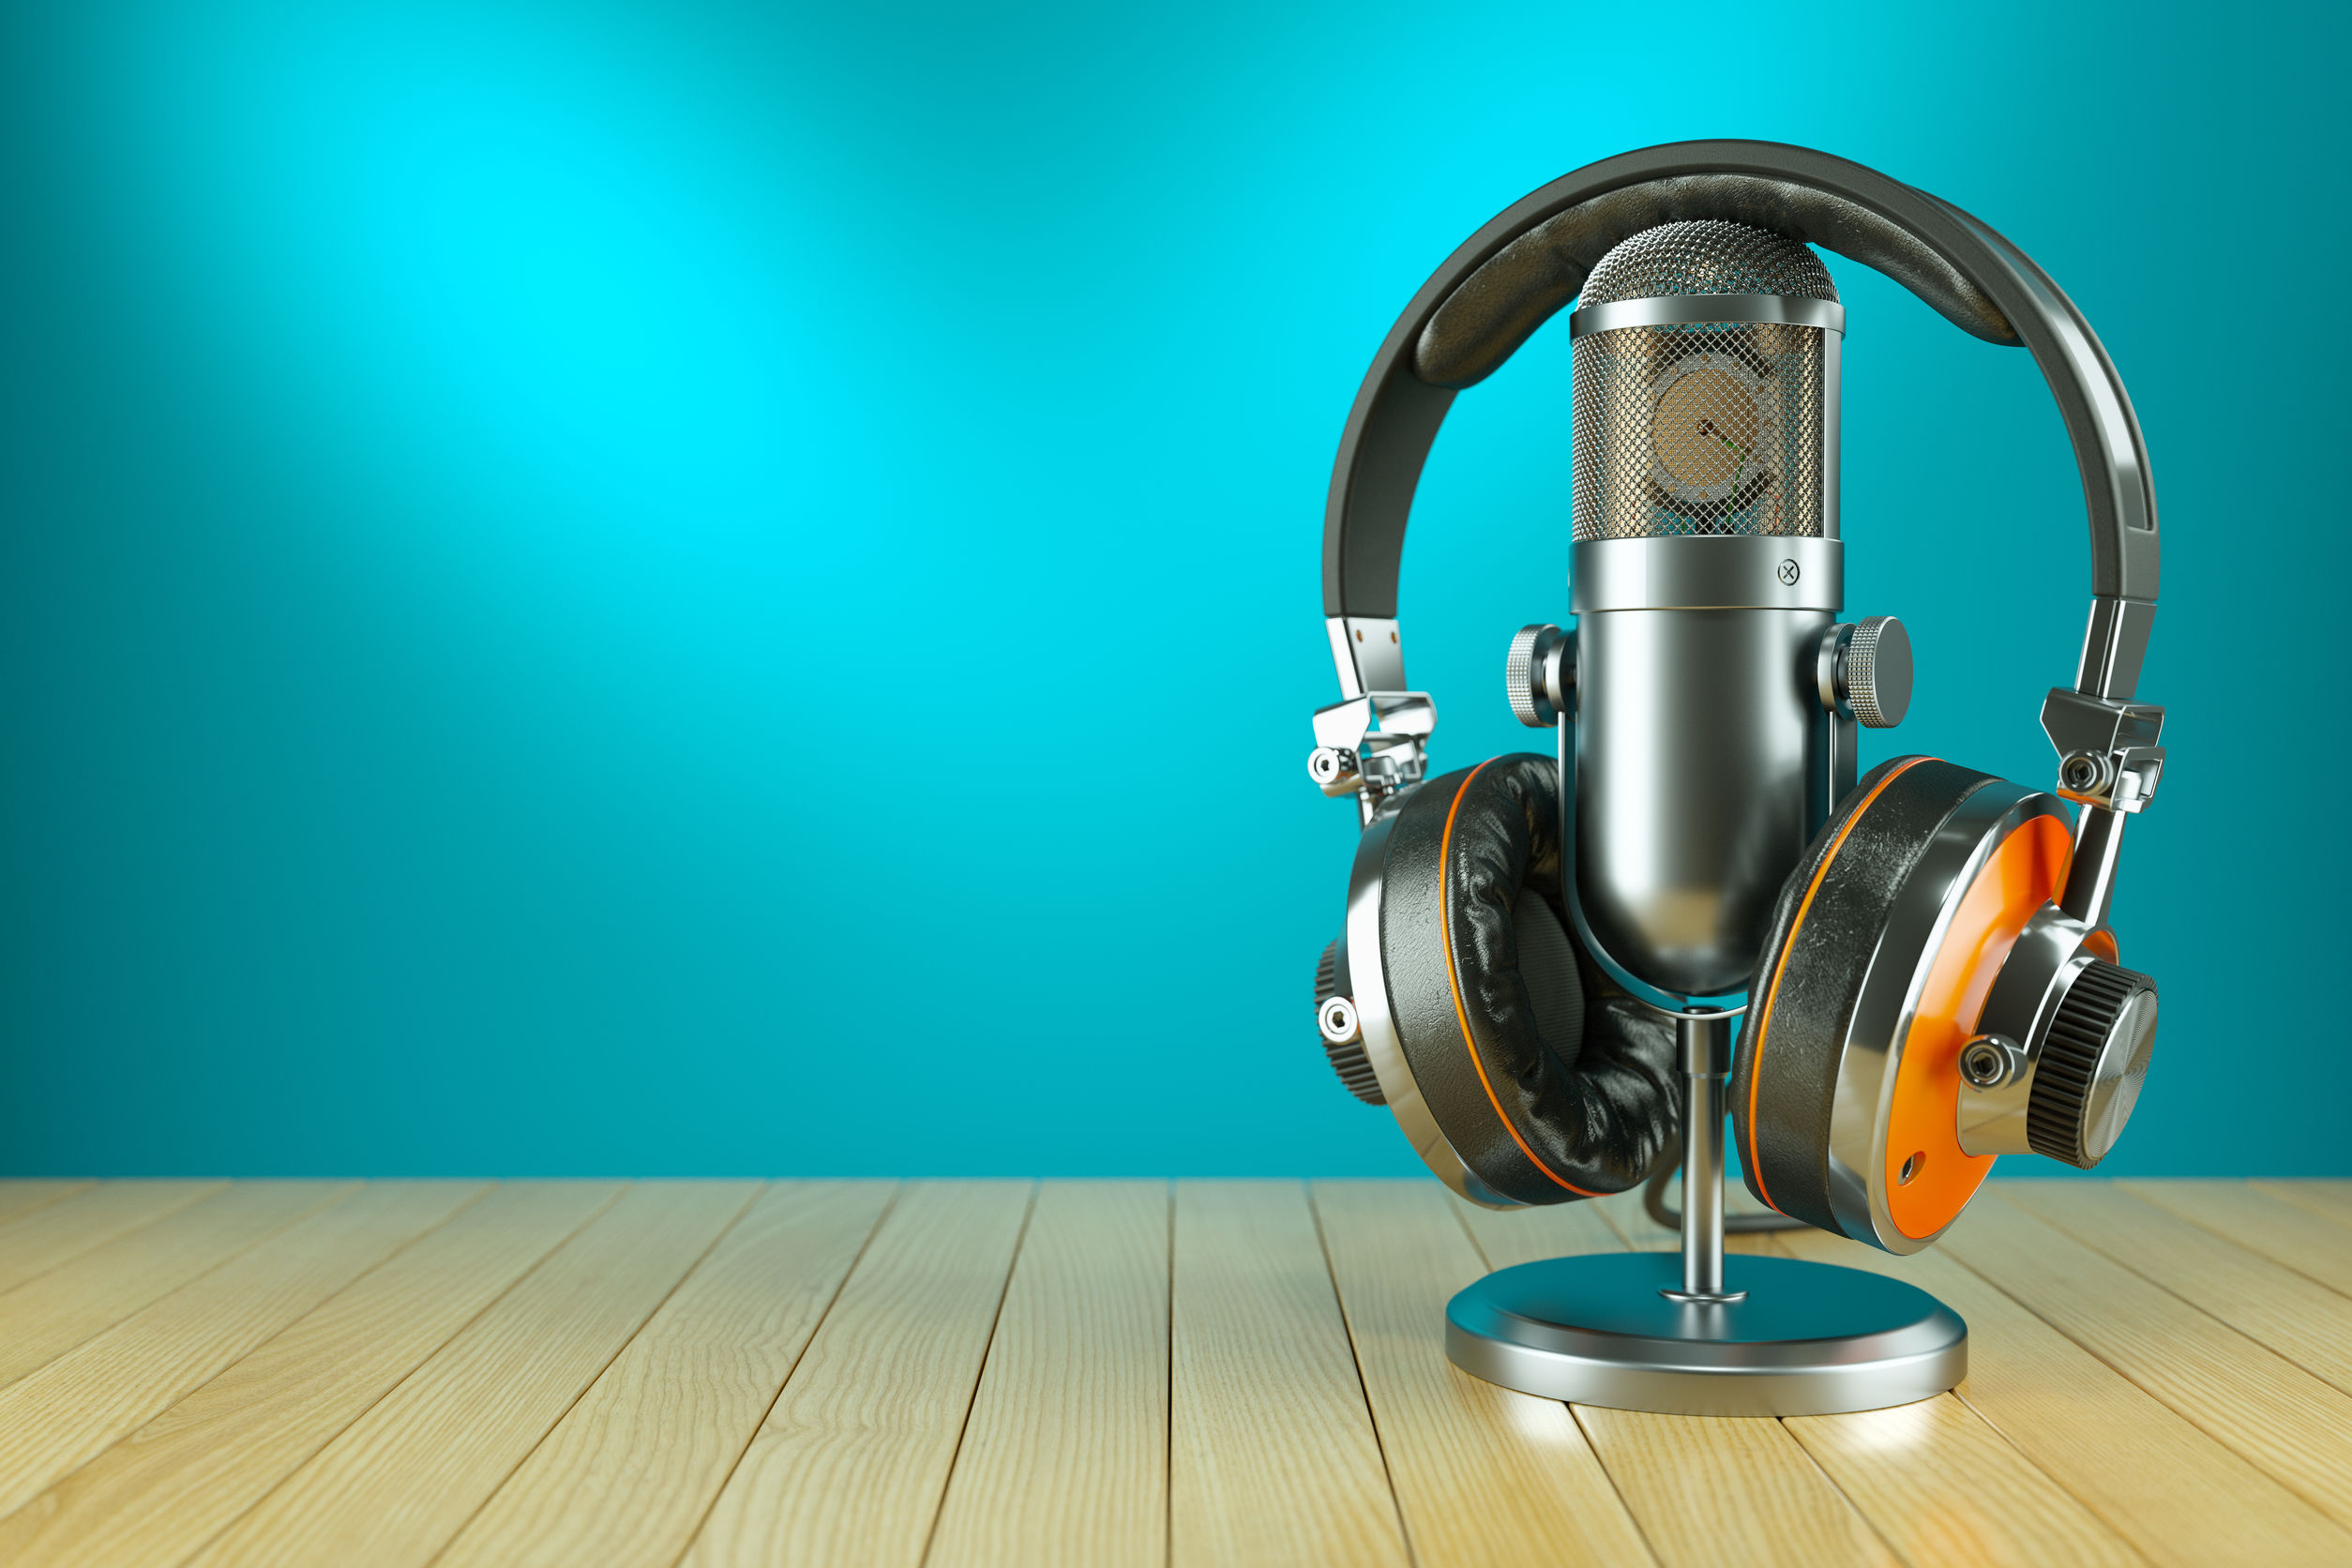 60174510 - professional studio microphone and headphones on wooden table 3d